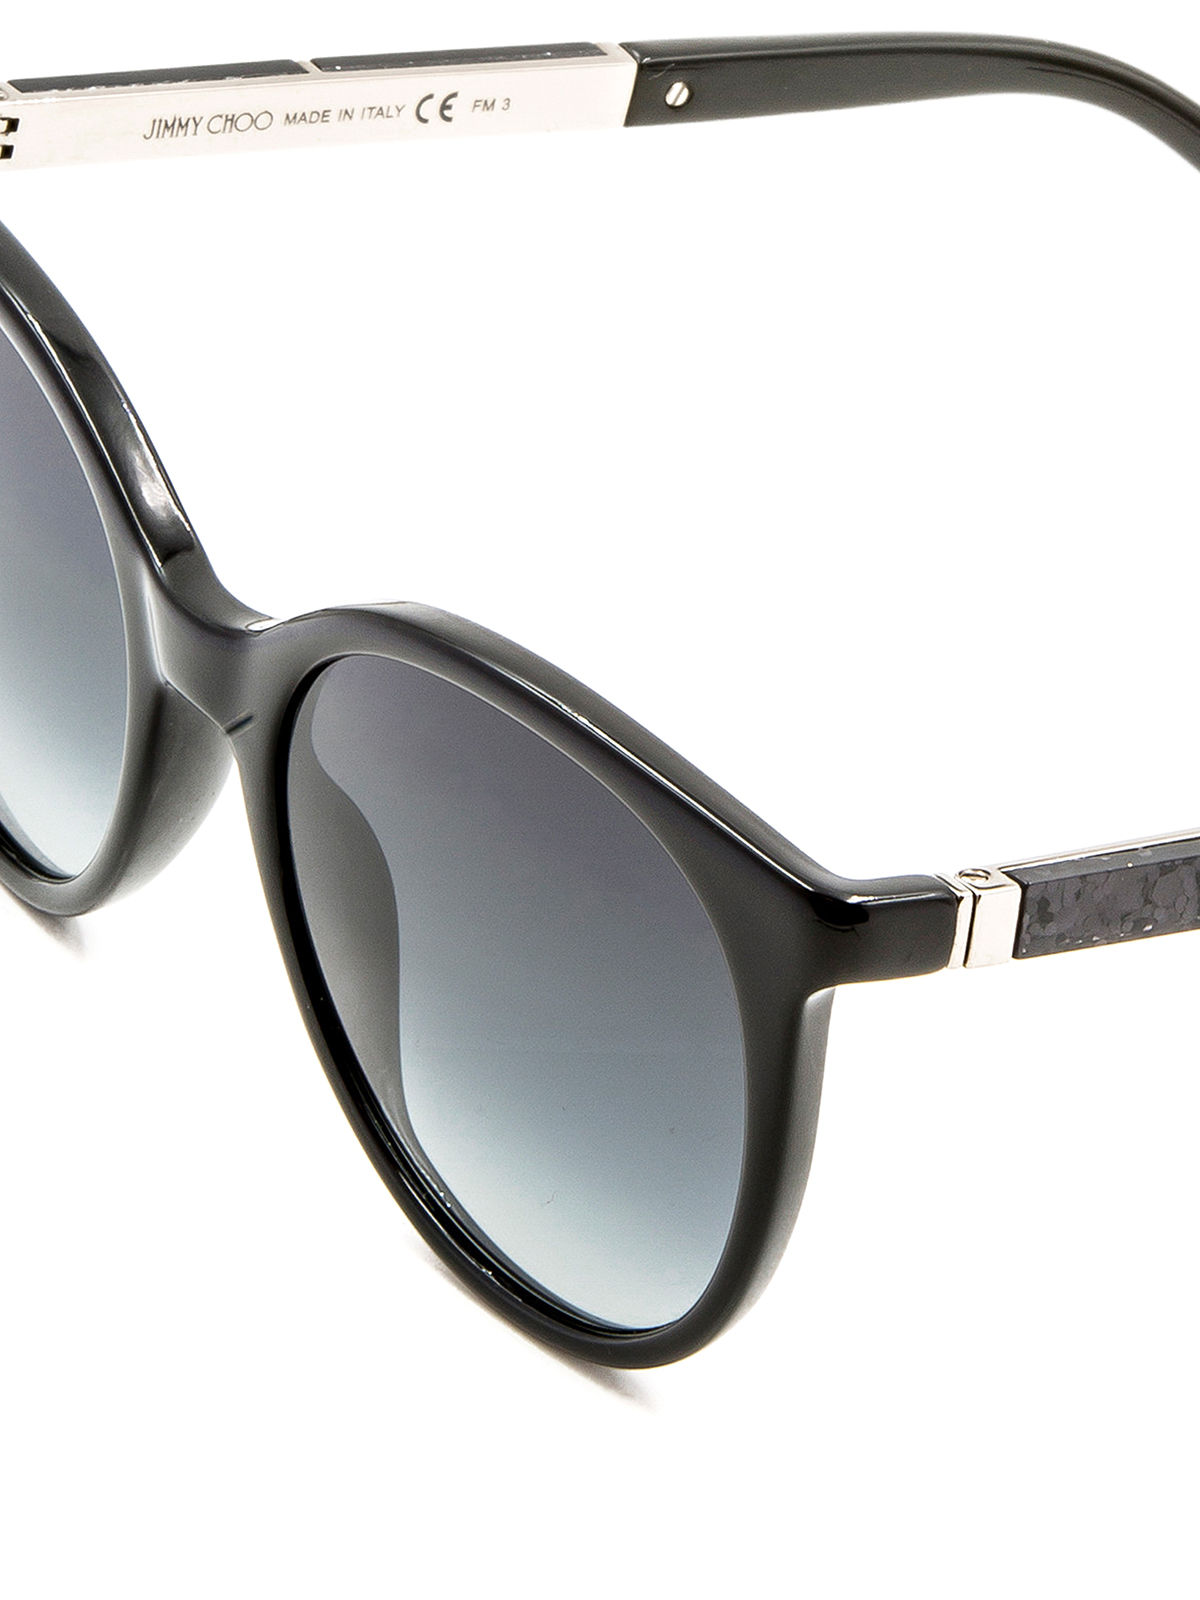 7071adaab678 iKRIX JIMMY CHOO  sunglasses - Erie sunglasses with plexi glitter